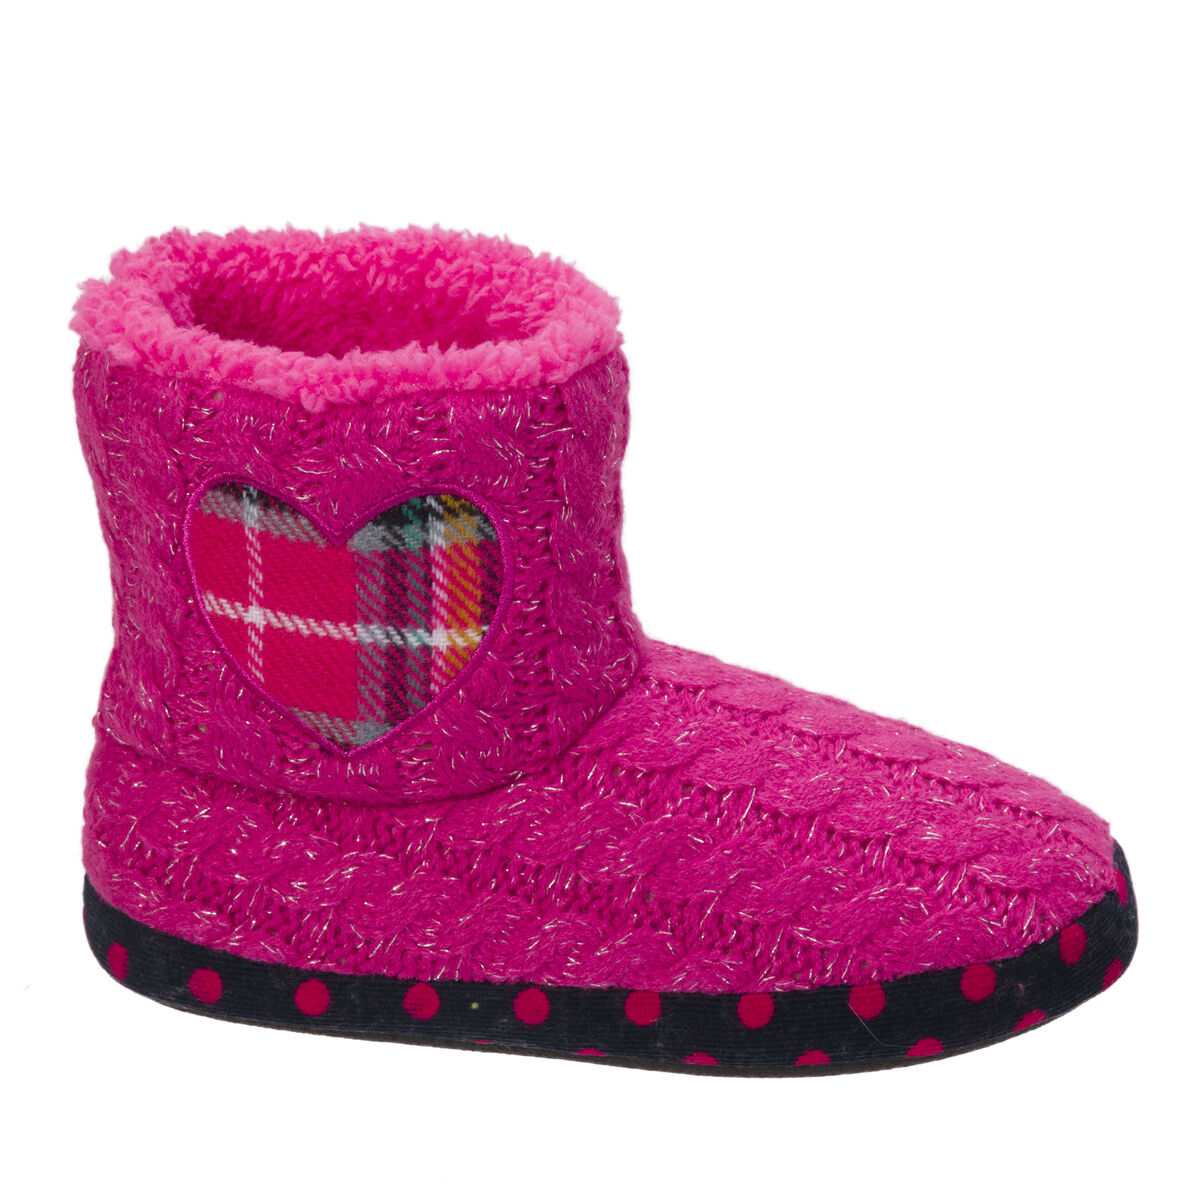 Kids Sweater Knit Bootie with Heart